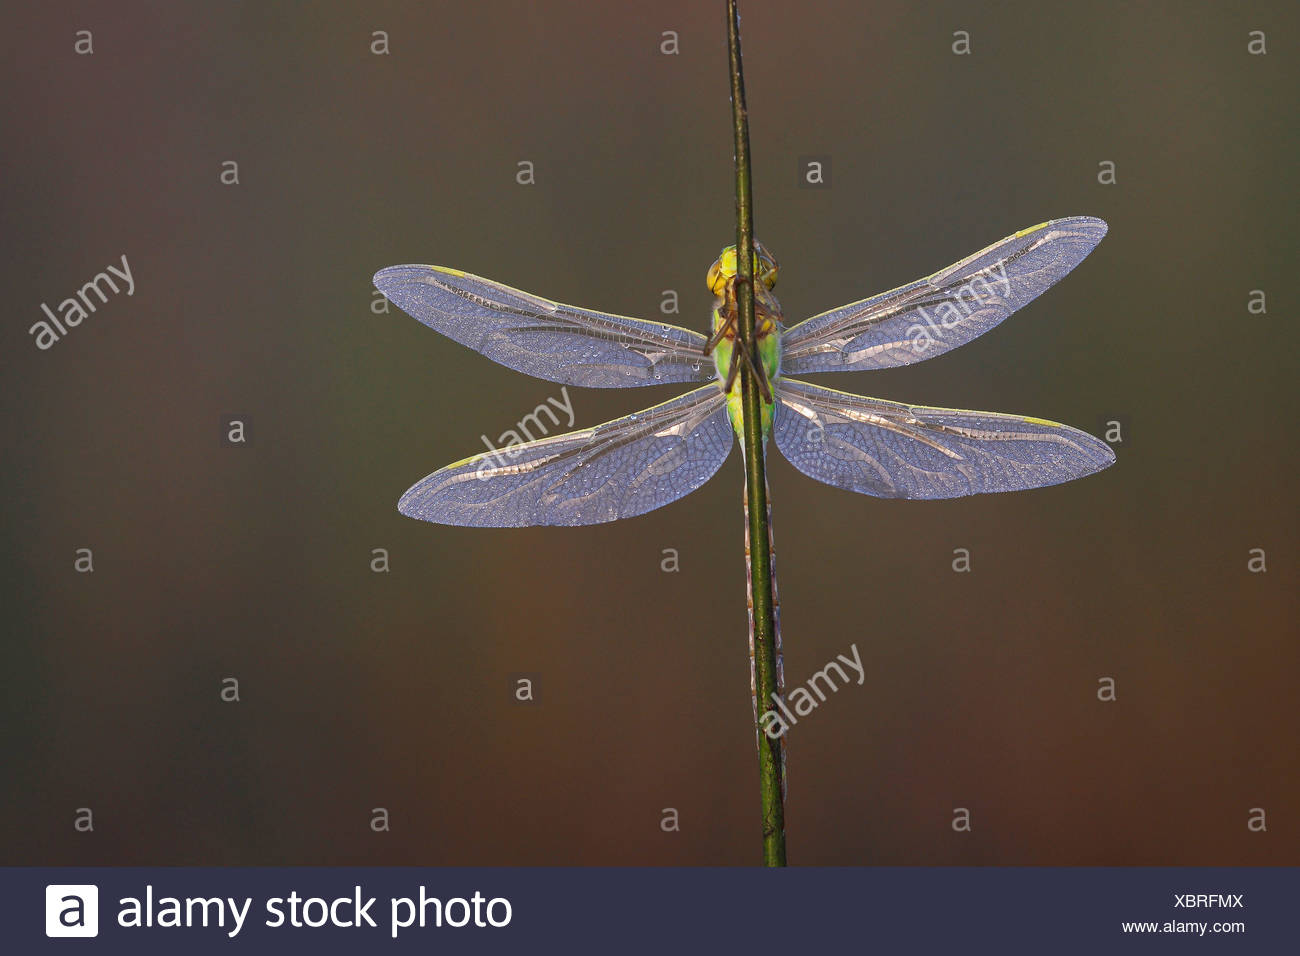 emperor dragonfly (Anax imperator), at blade of grass, Netherlands - Stock Image